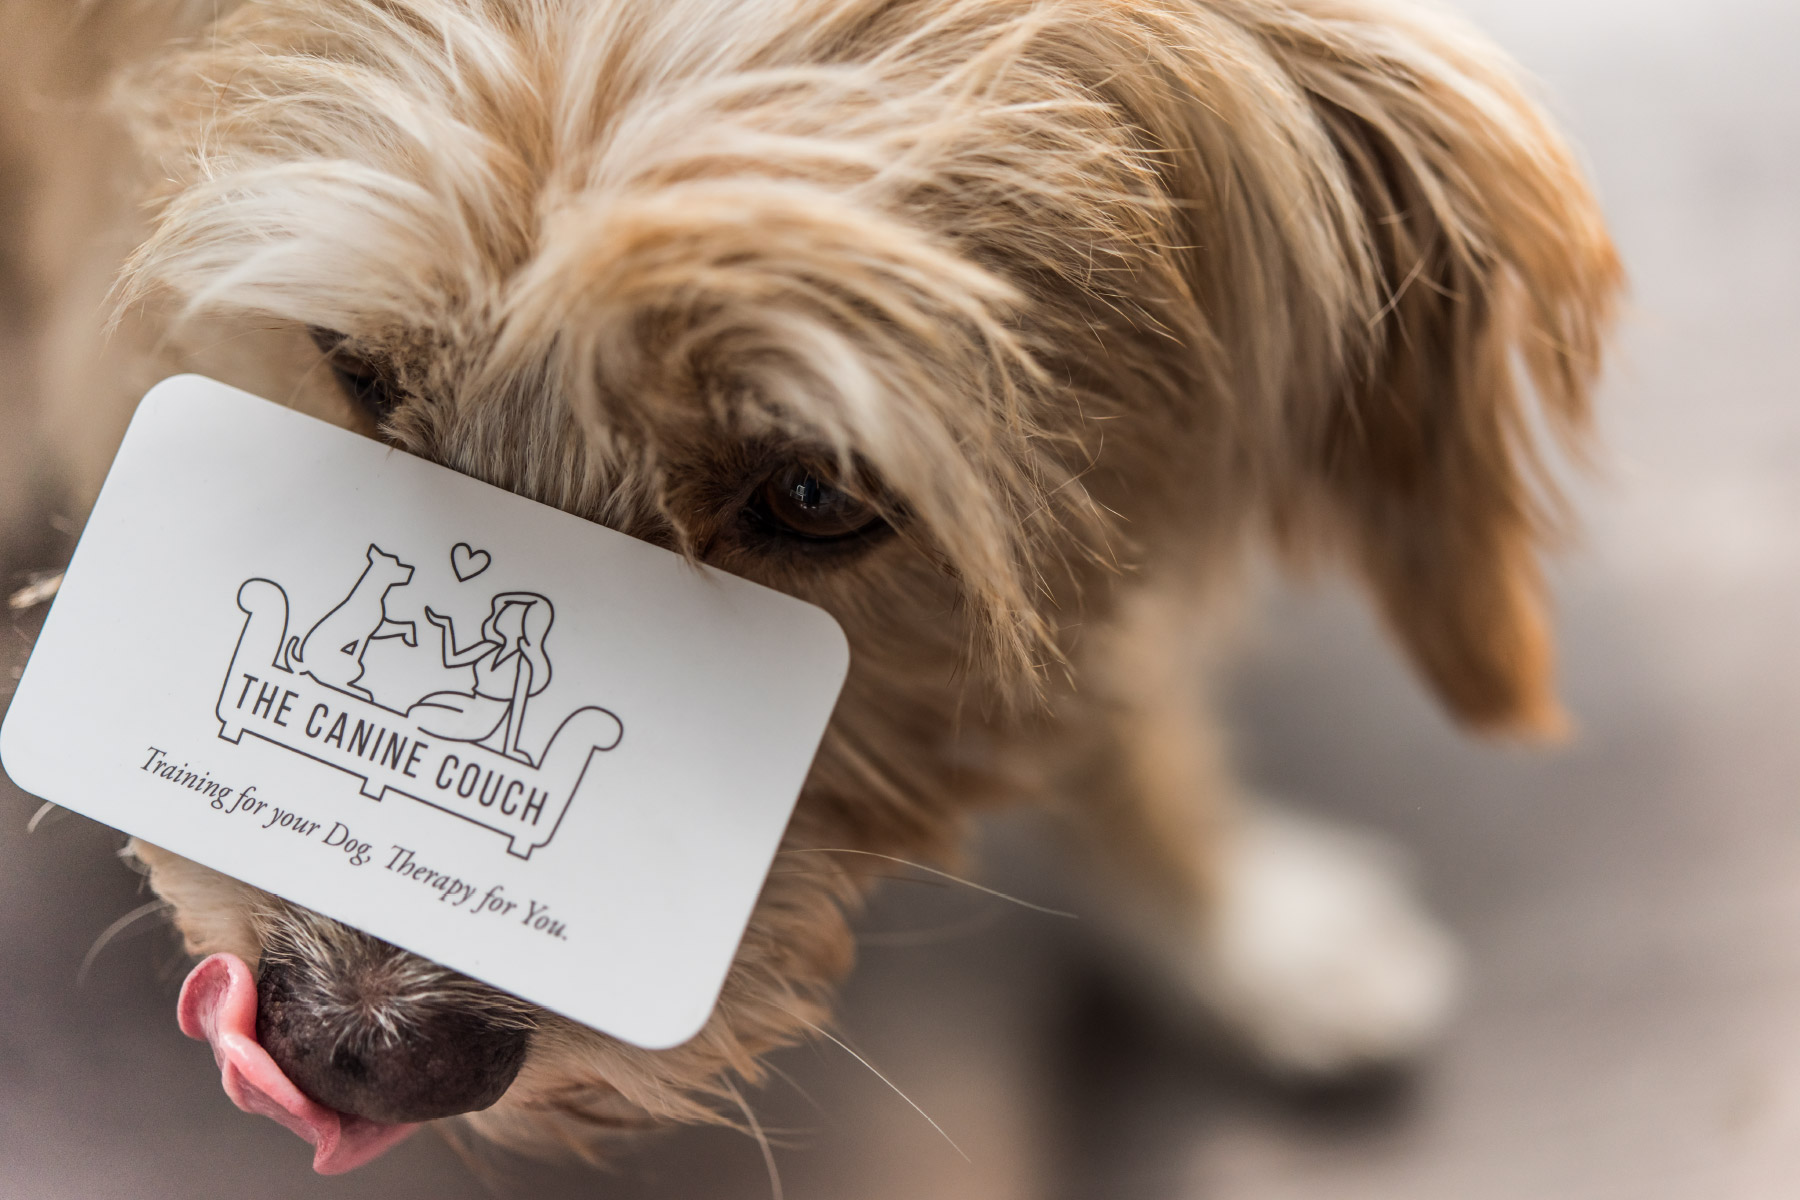 Puppy with business card on nose